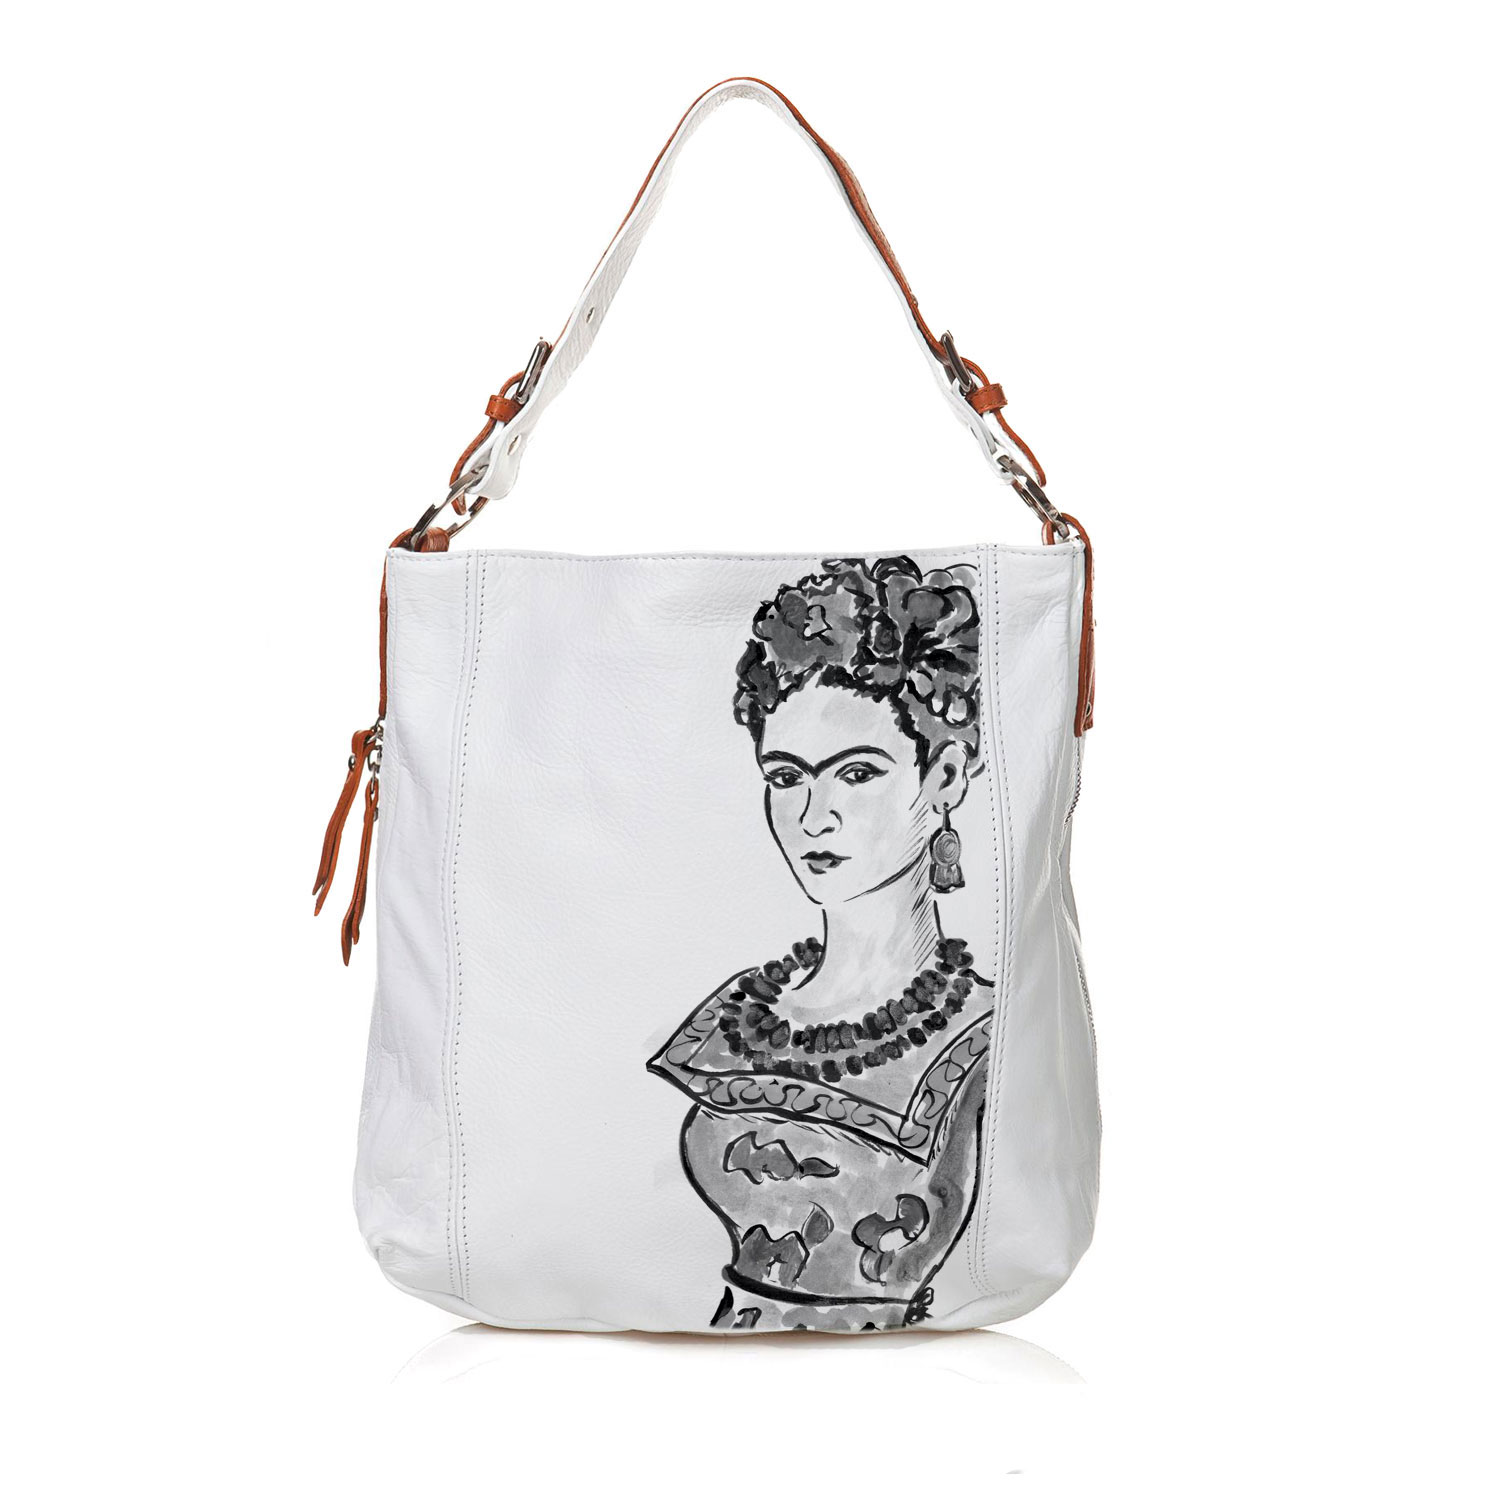 Borsa dipinta a mano - Passione per Frida black and white